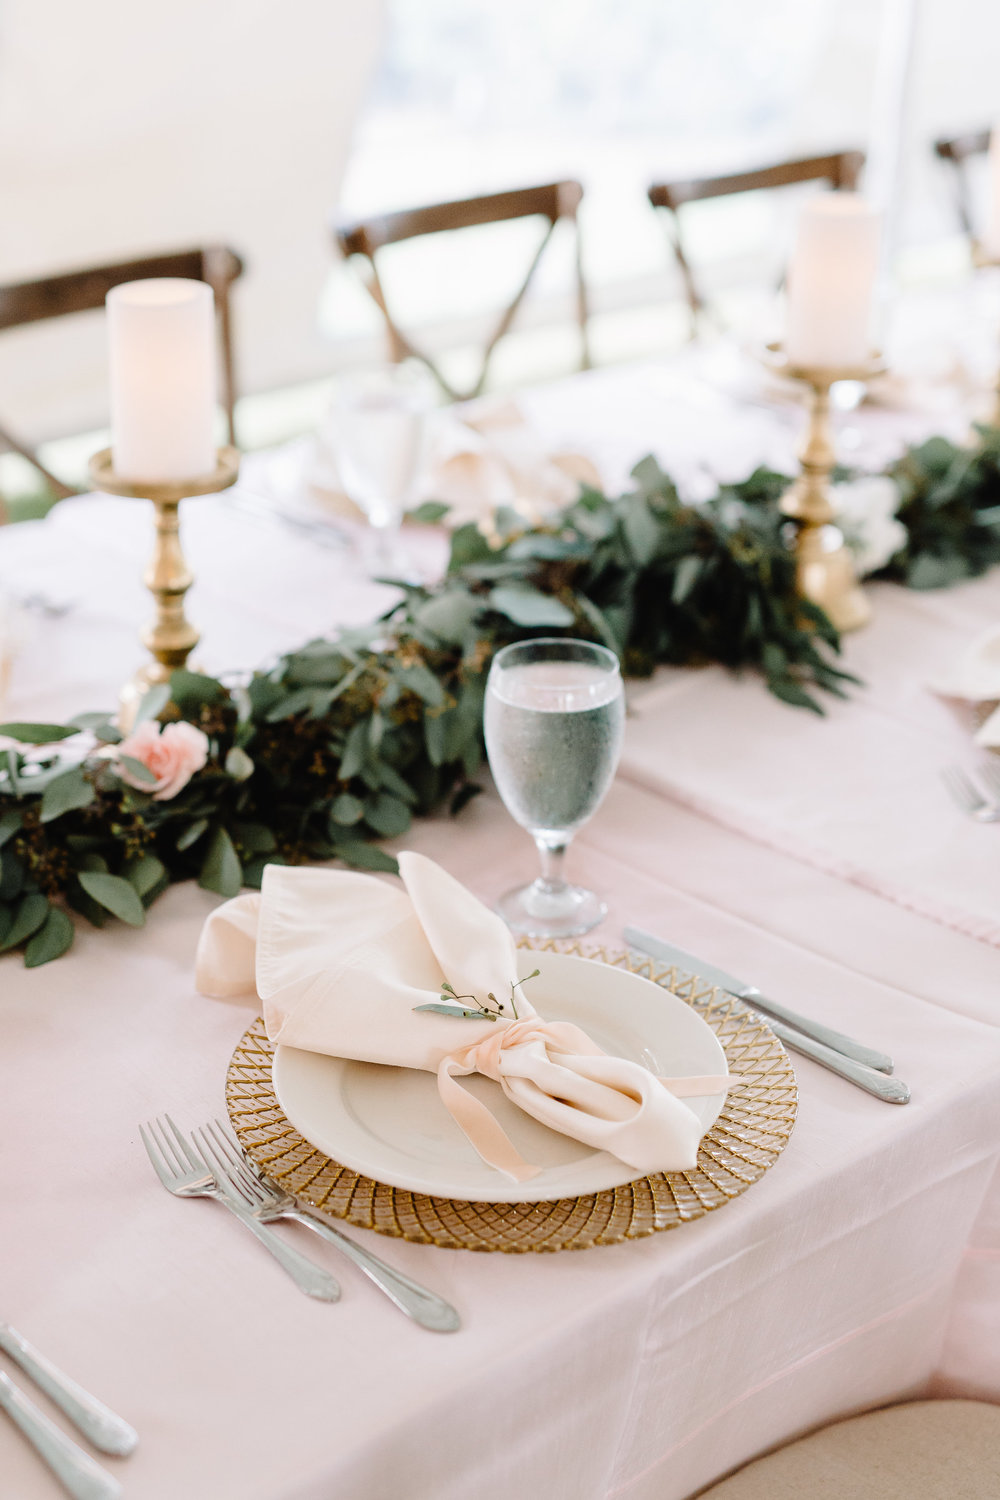 Blush & Gold Wedding at Cypress Grove Estate House  Orlando Wedding Florist Bluegrass Chic  Orlando Wedding Planner Blue Ribbon Weddings  Orlando Wedding Photographer JP Pratt Photography  Wedding Ceremony at Cypress Grove Estate House  Tented Lakeside Wedding Reception at Cypress Grove Estate House